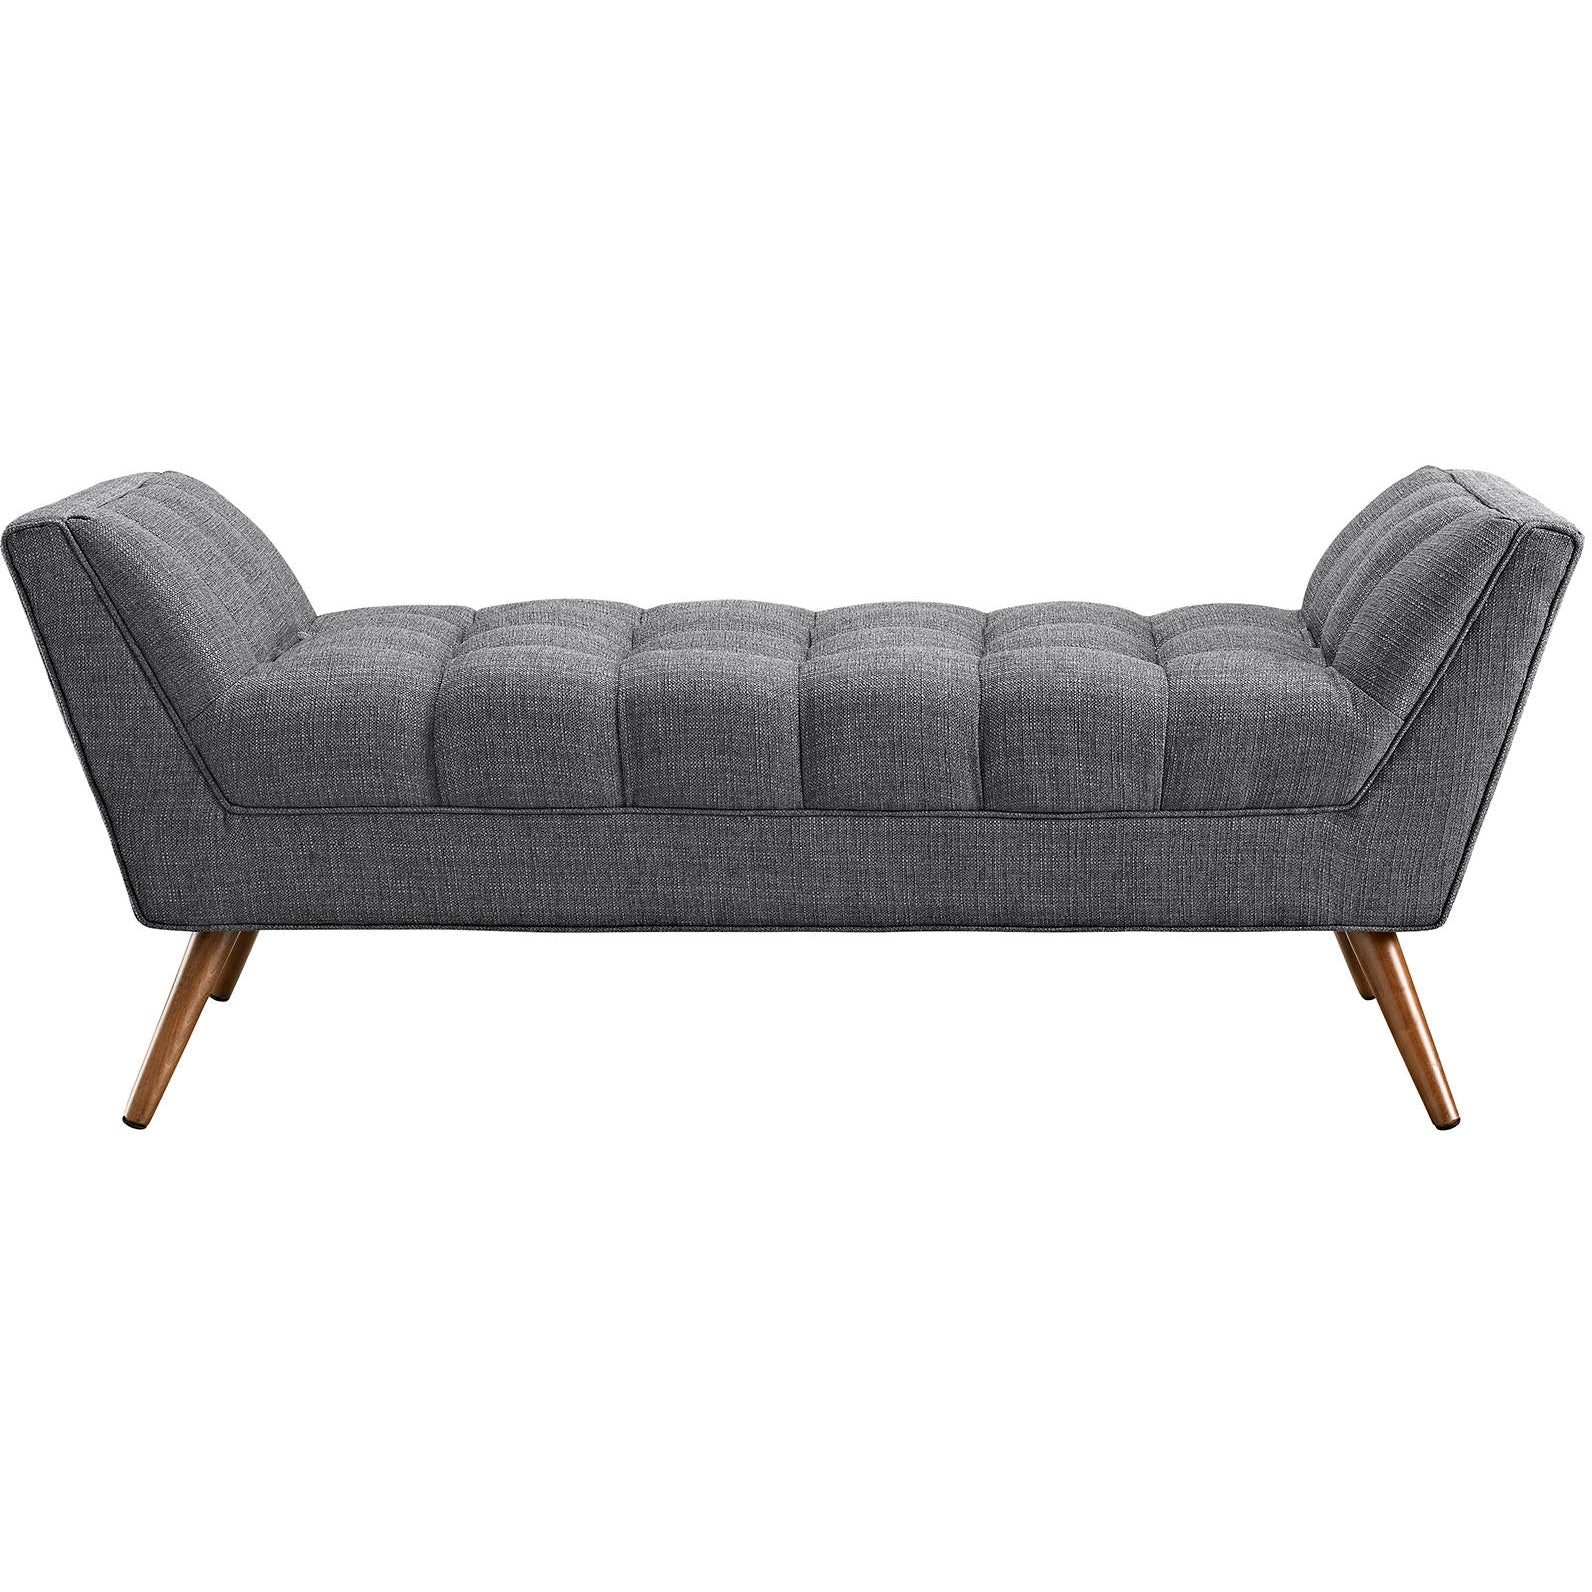 Response Medium Upholstered Fabric Bench - Gray